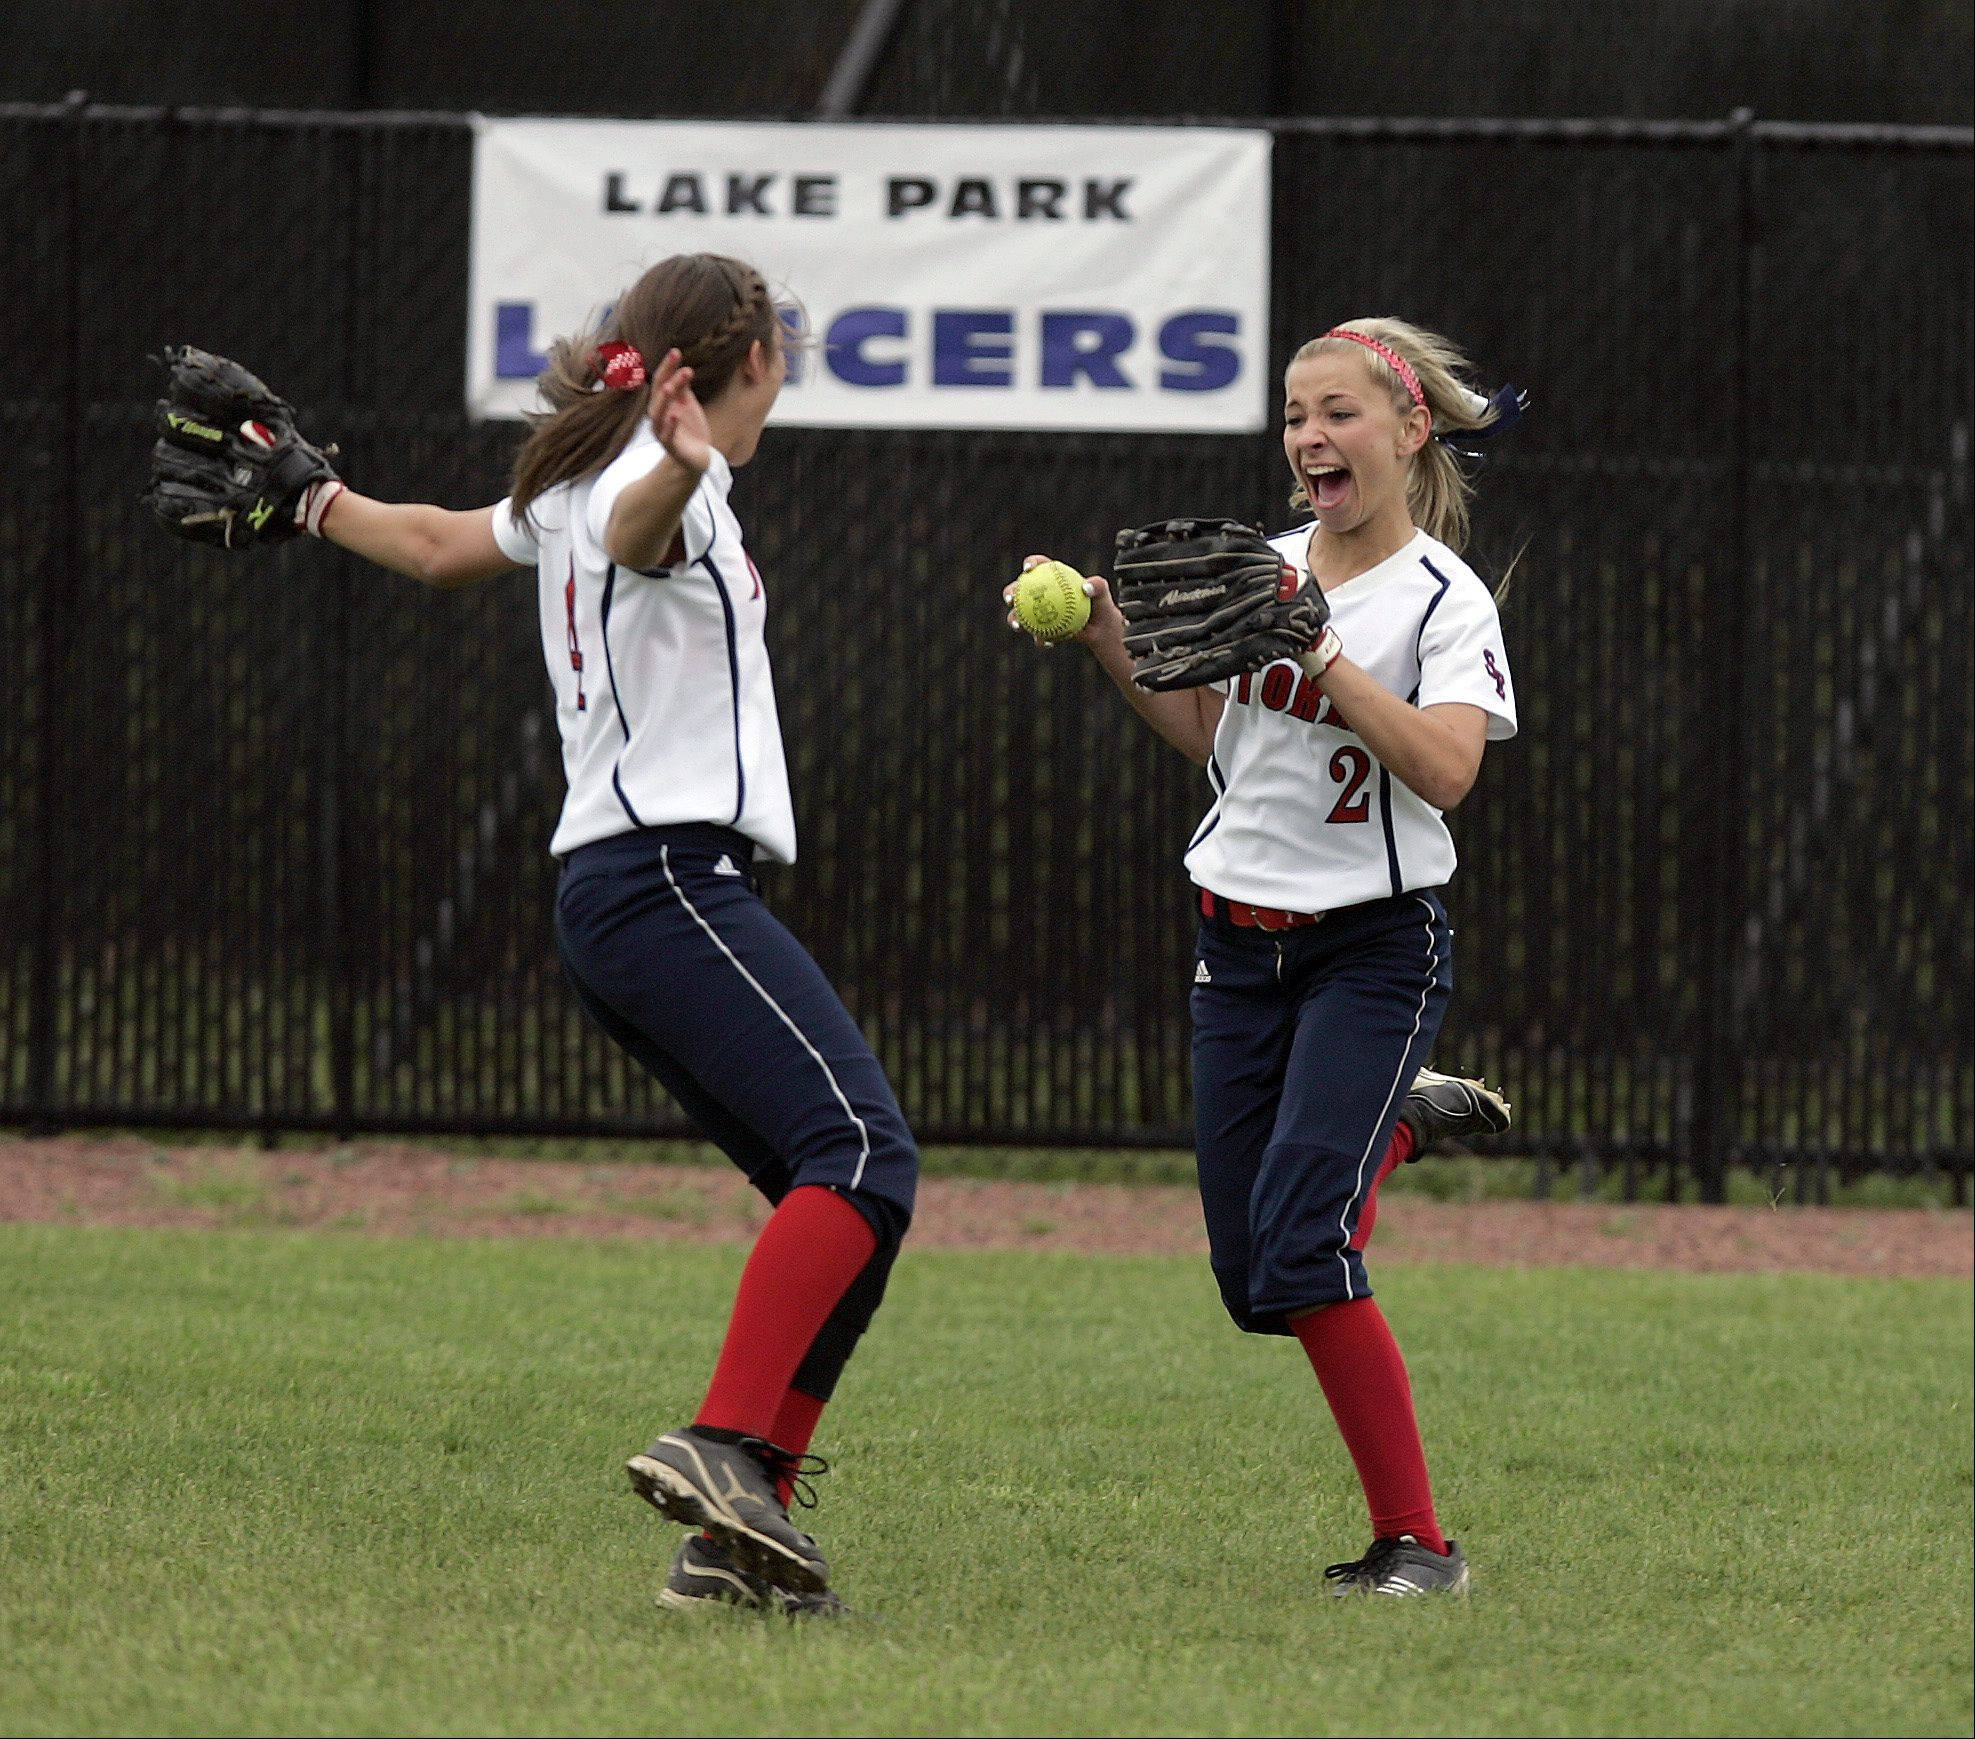 South Elgin's Mallory Mecklenburg (2) is greeted by Brittany Koss after pulling in the last out of the Class 4A regional softball final Saturday.